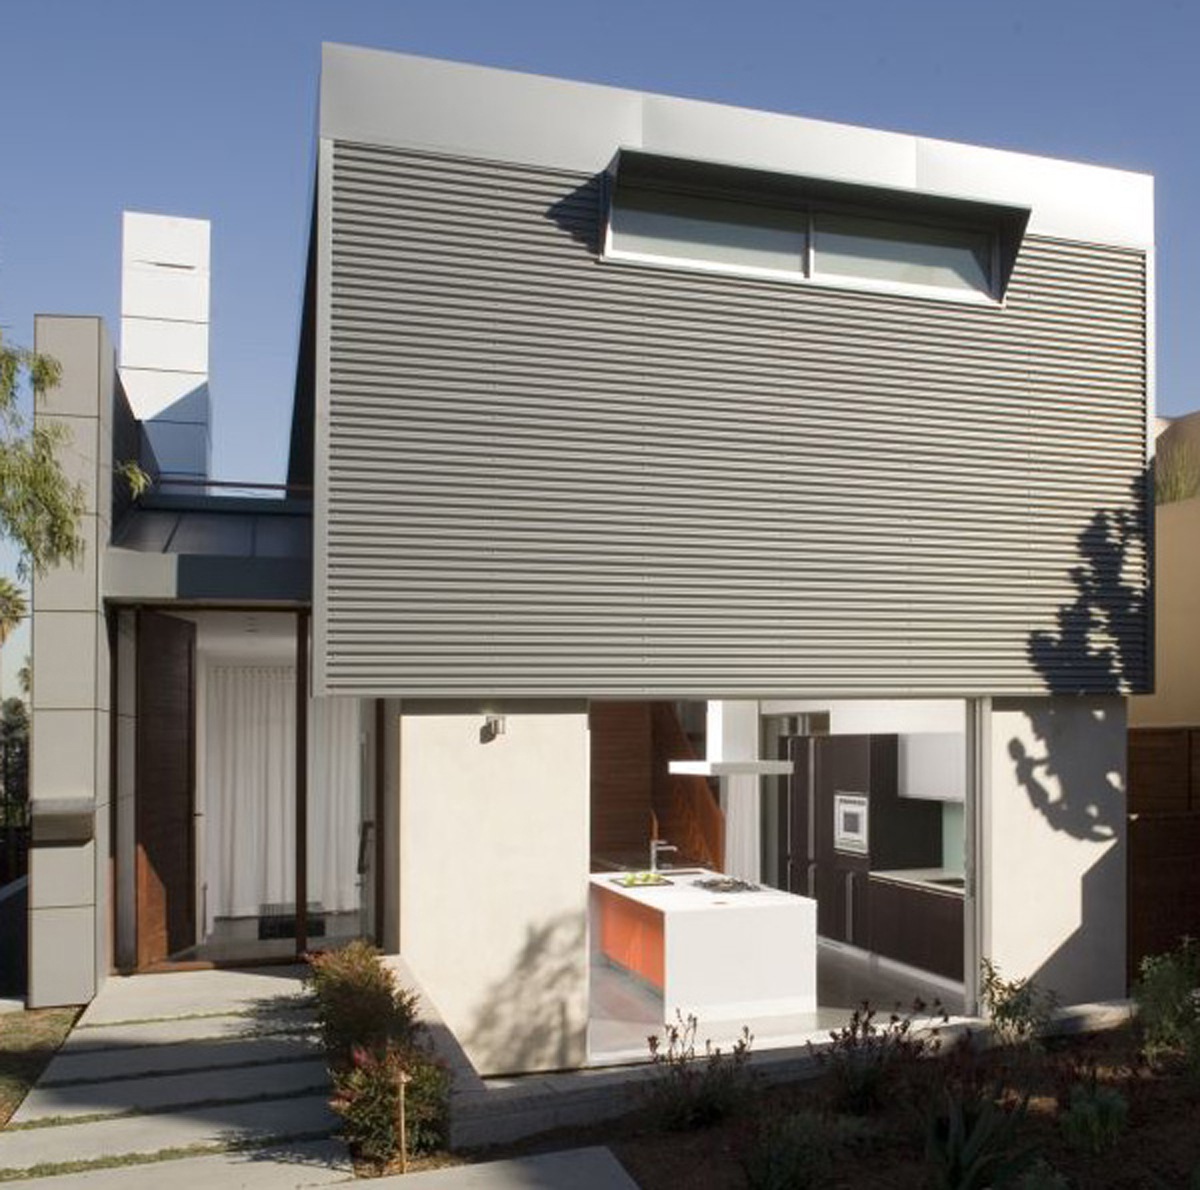 Minimalist urban house inspirations for Urban minimalist house